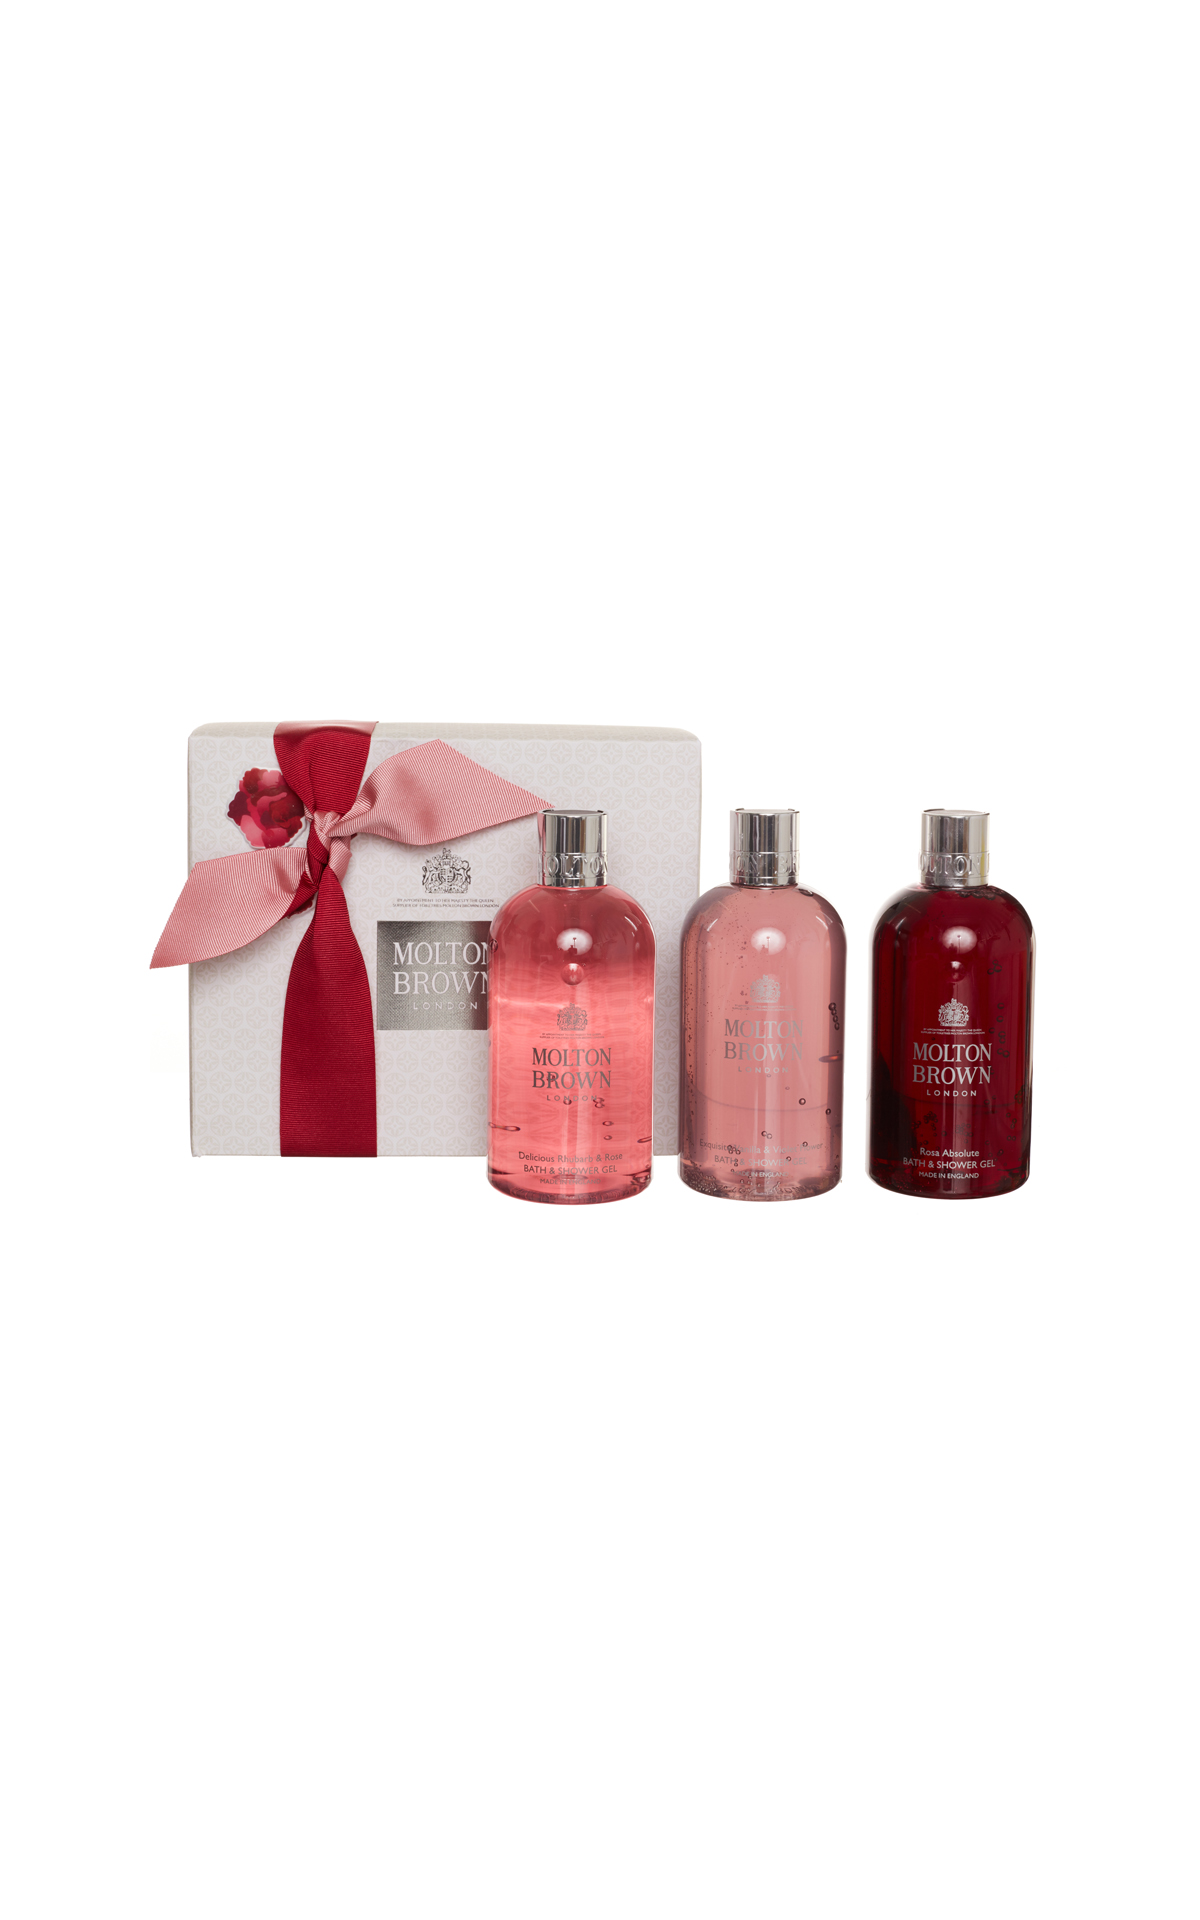 Molton Brown Gift set for her from Bicester Village